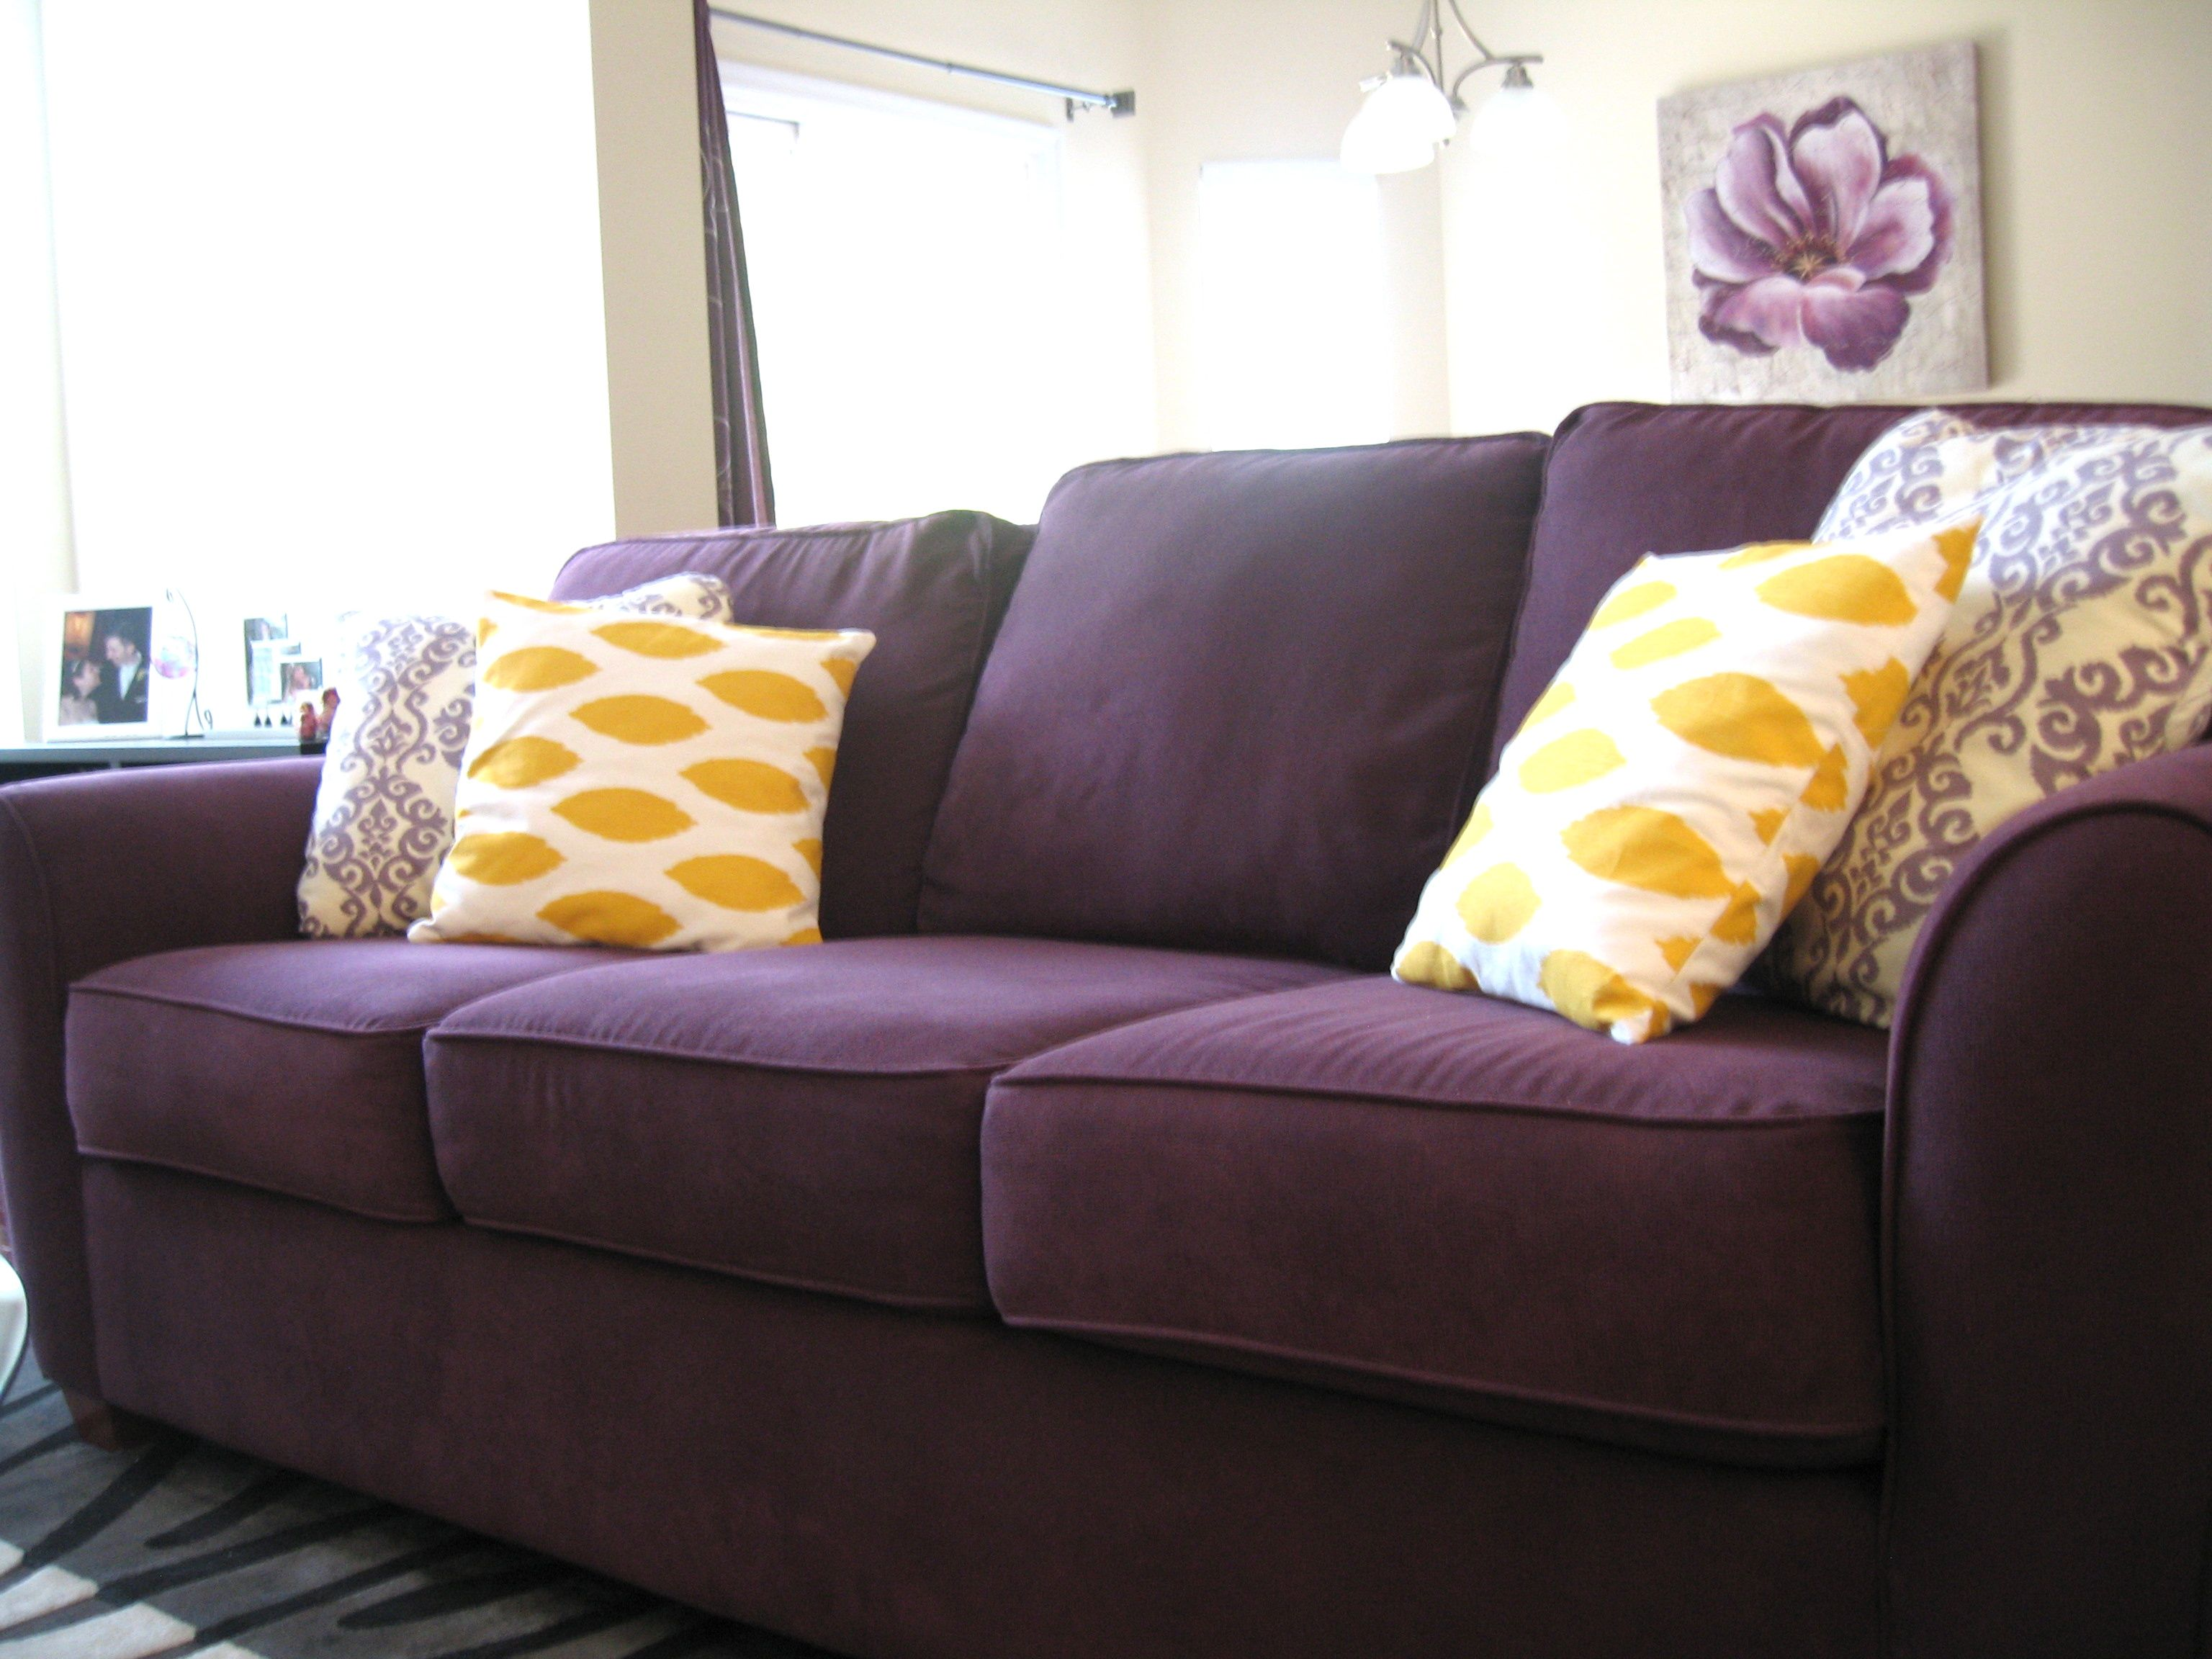 Superior I Love My Purple Couch, But It Desperately Needs Some Throw Pillows Like  This